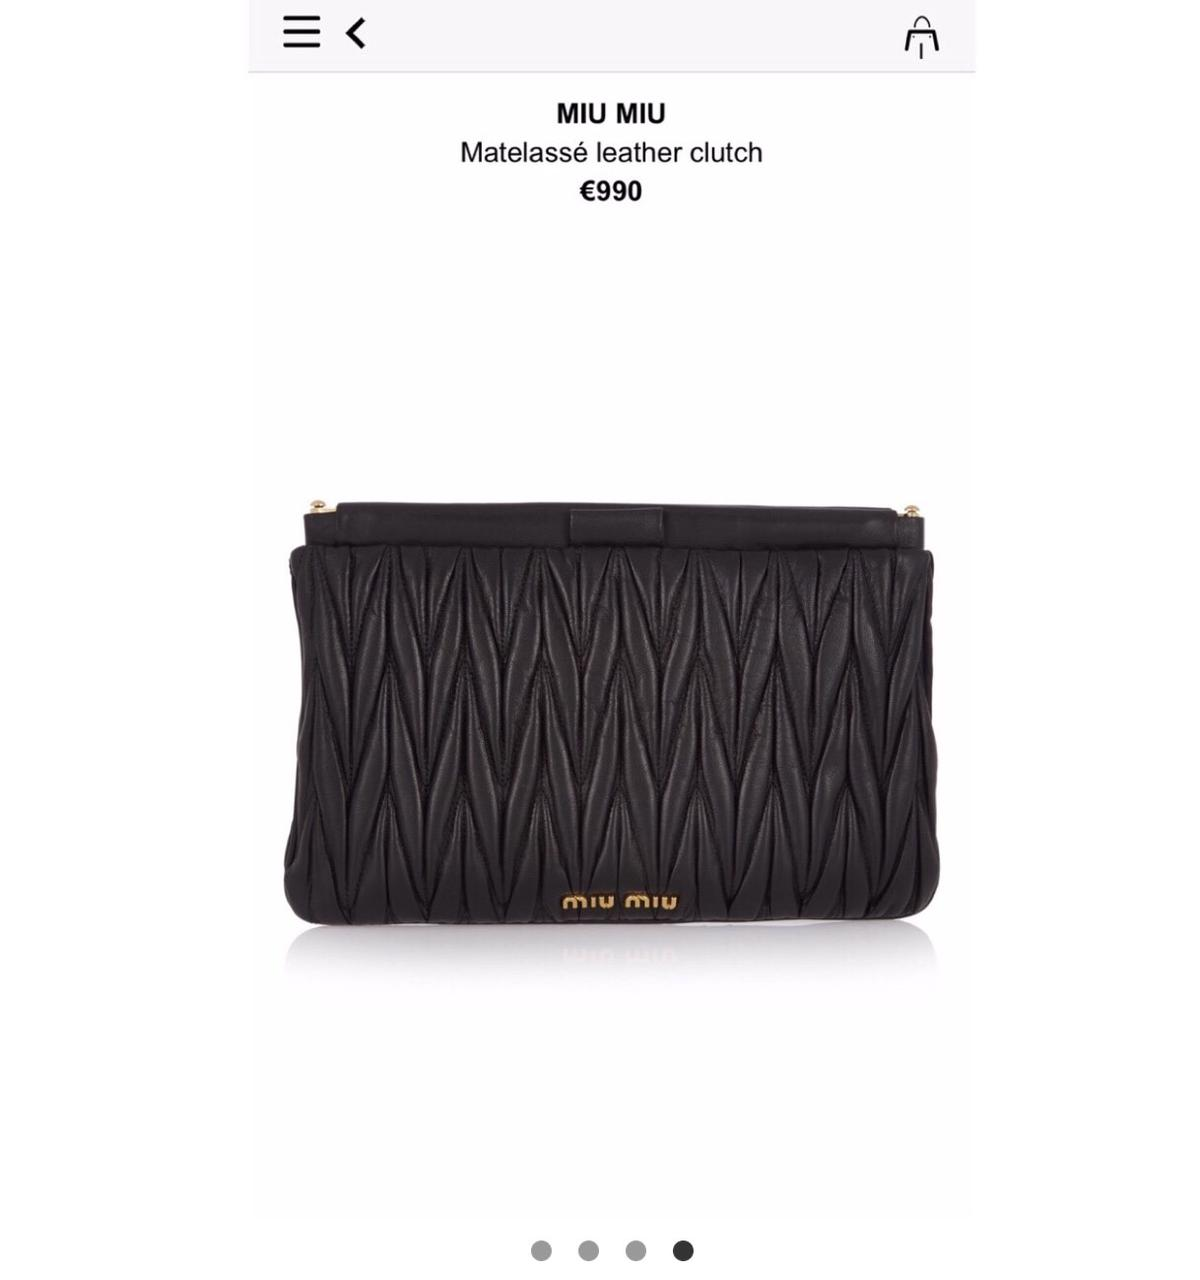 wholesale dealer 19591 08c0d MiuMiu - pochette - SALDI in 37138 Verona für 350,00 ...